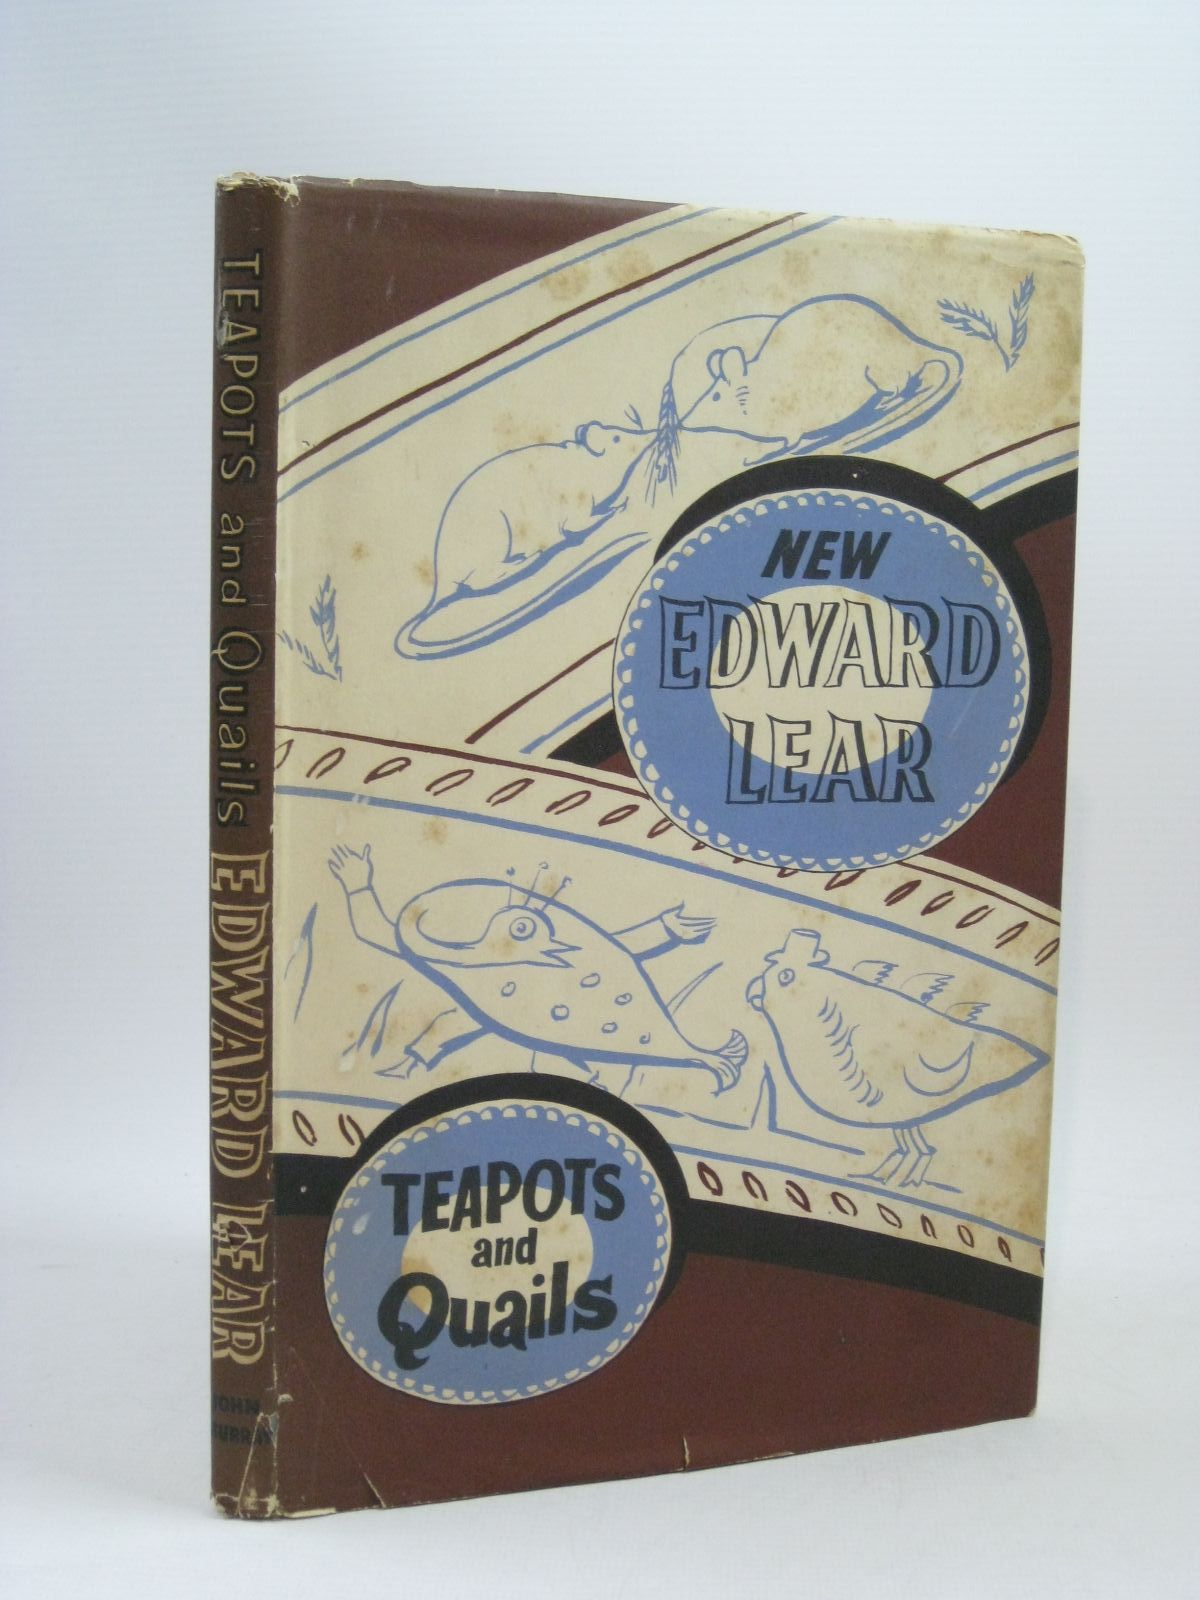 Photo of TEAPOTS AND QUAILS AND OTHER NEW NONSENSES written by Lear, Edward illustrated by Lear, Edward published by John Murray (STOCK CODE: 1314793)  for sale by Stella & Rose's Books